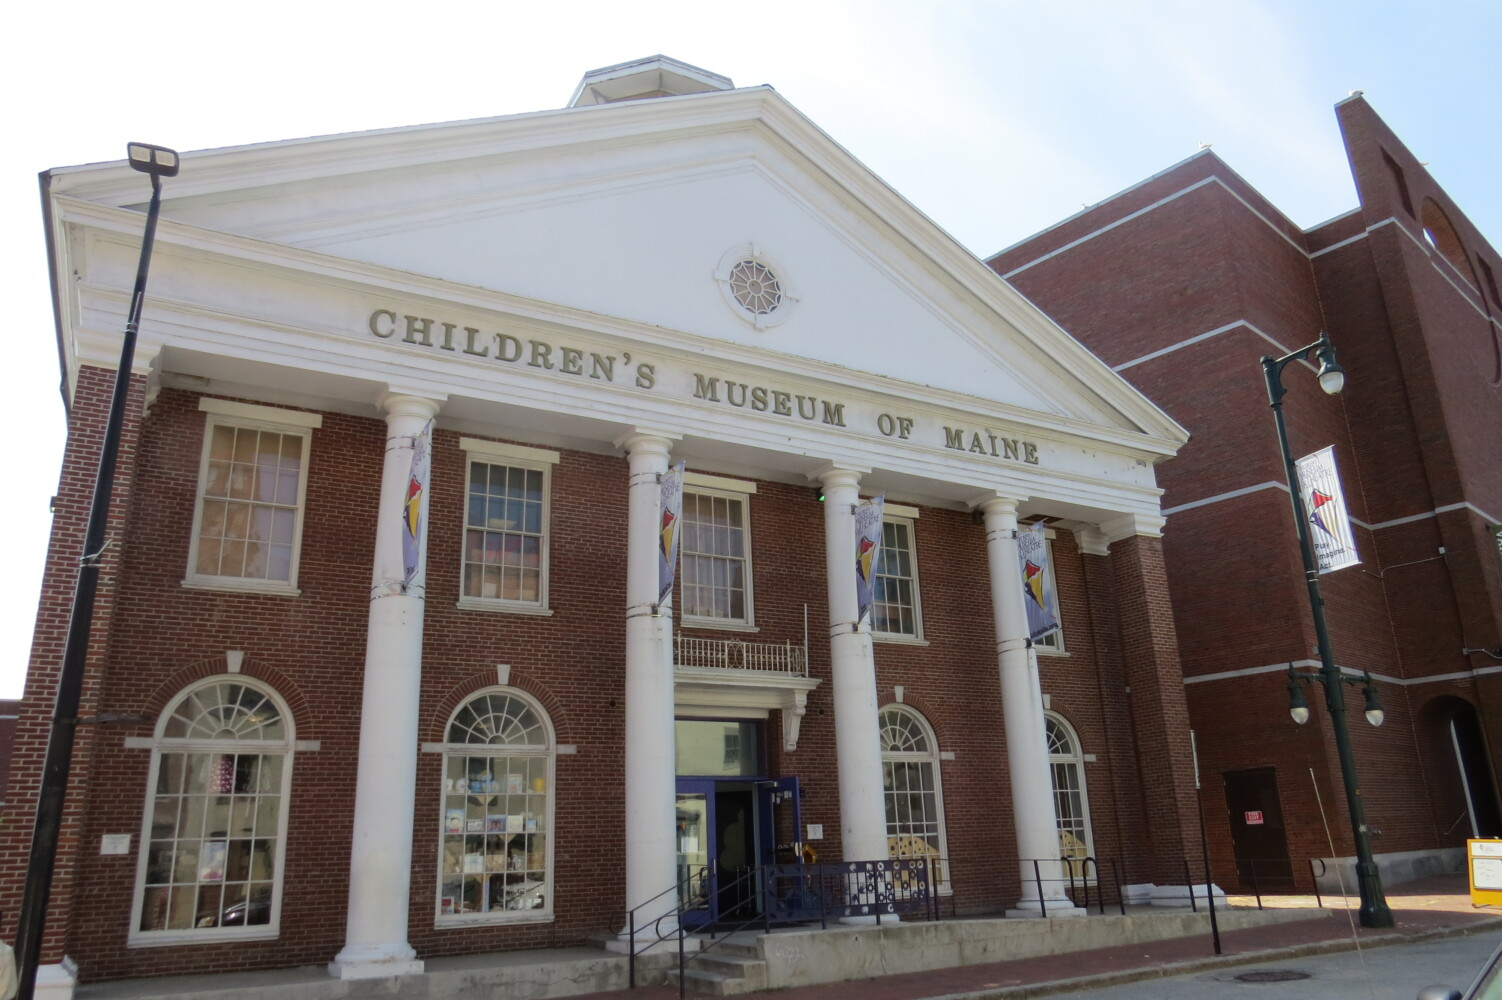 Children's museum sells building to Portland Museum of Art in boost for both - CentralMaine.com